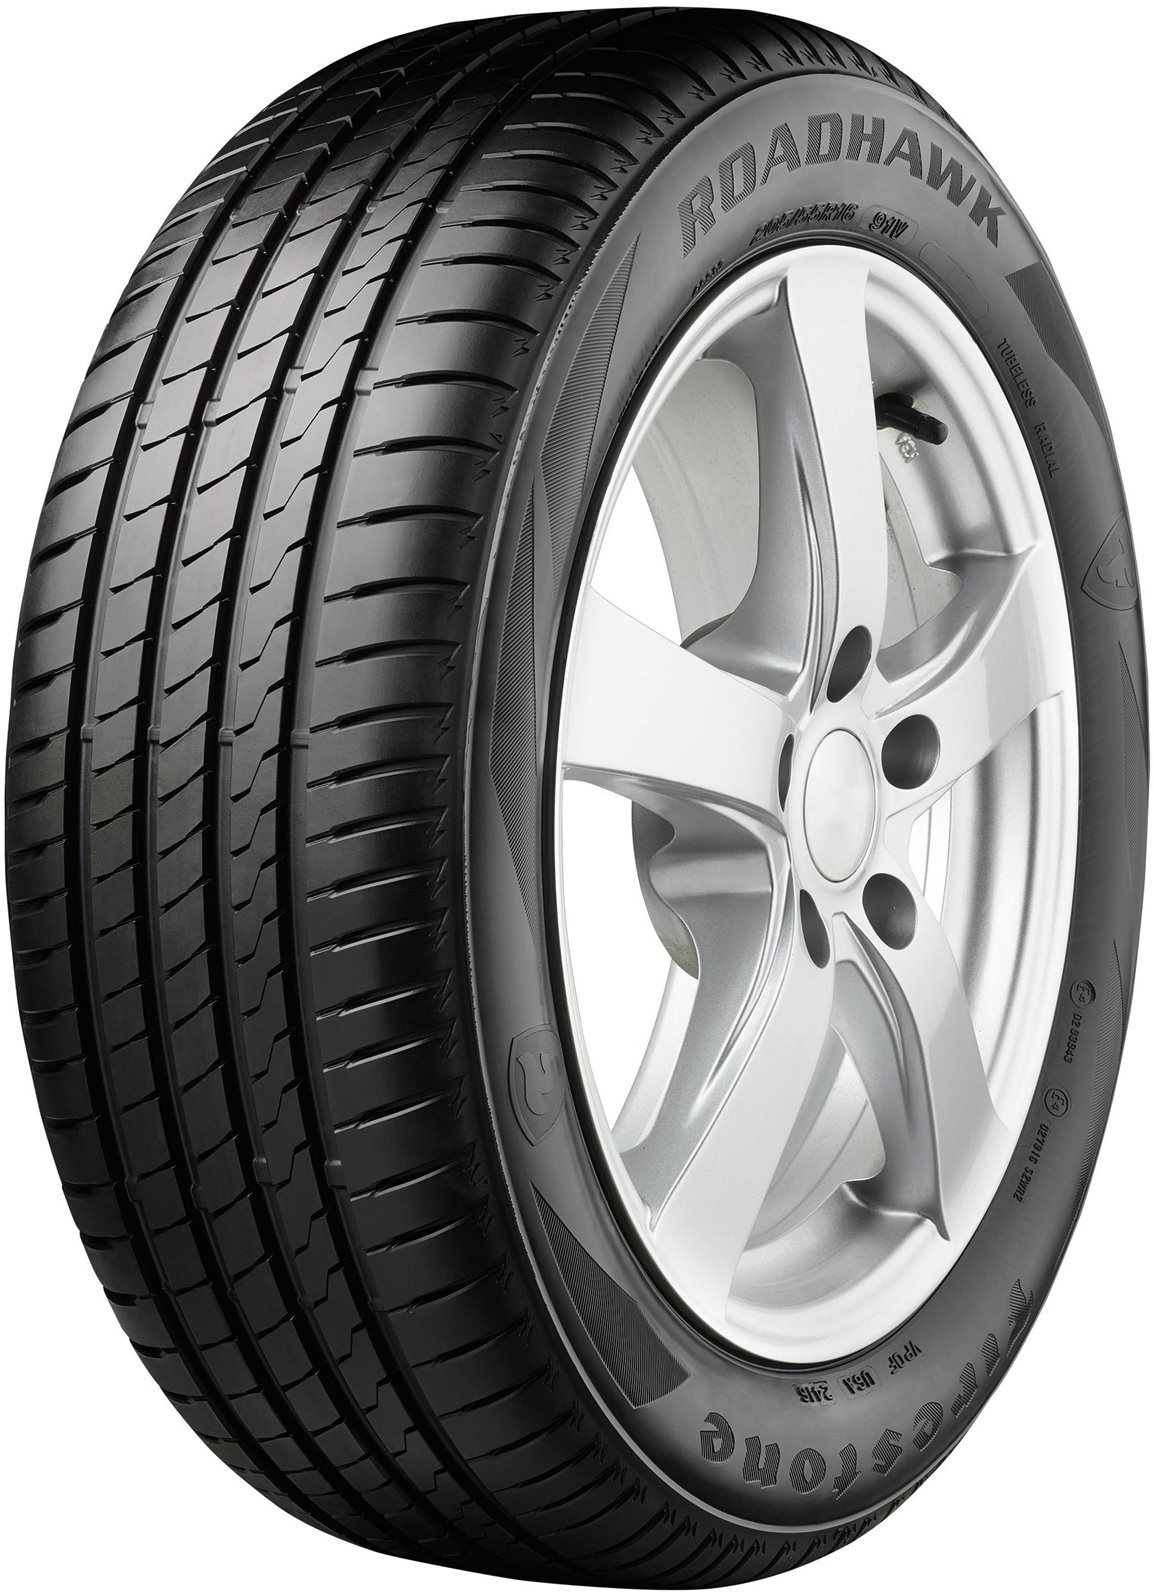 Firestone RoadHawk 215/65R16 98H